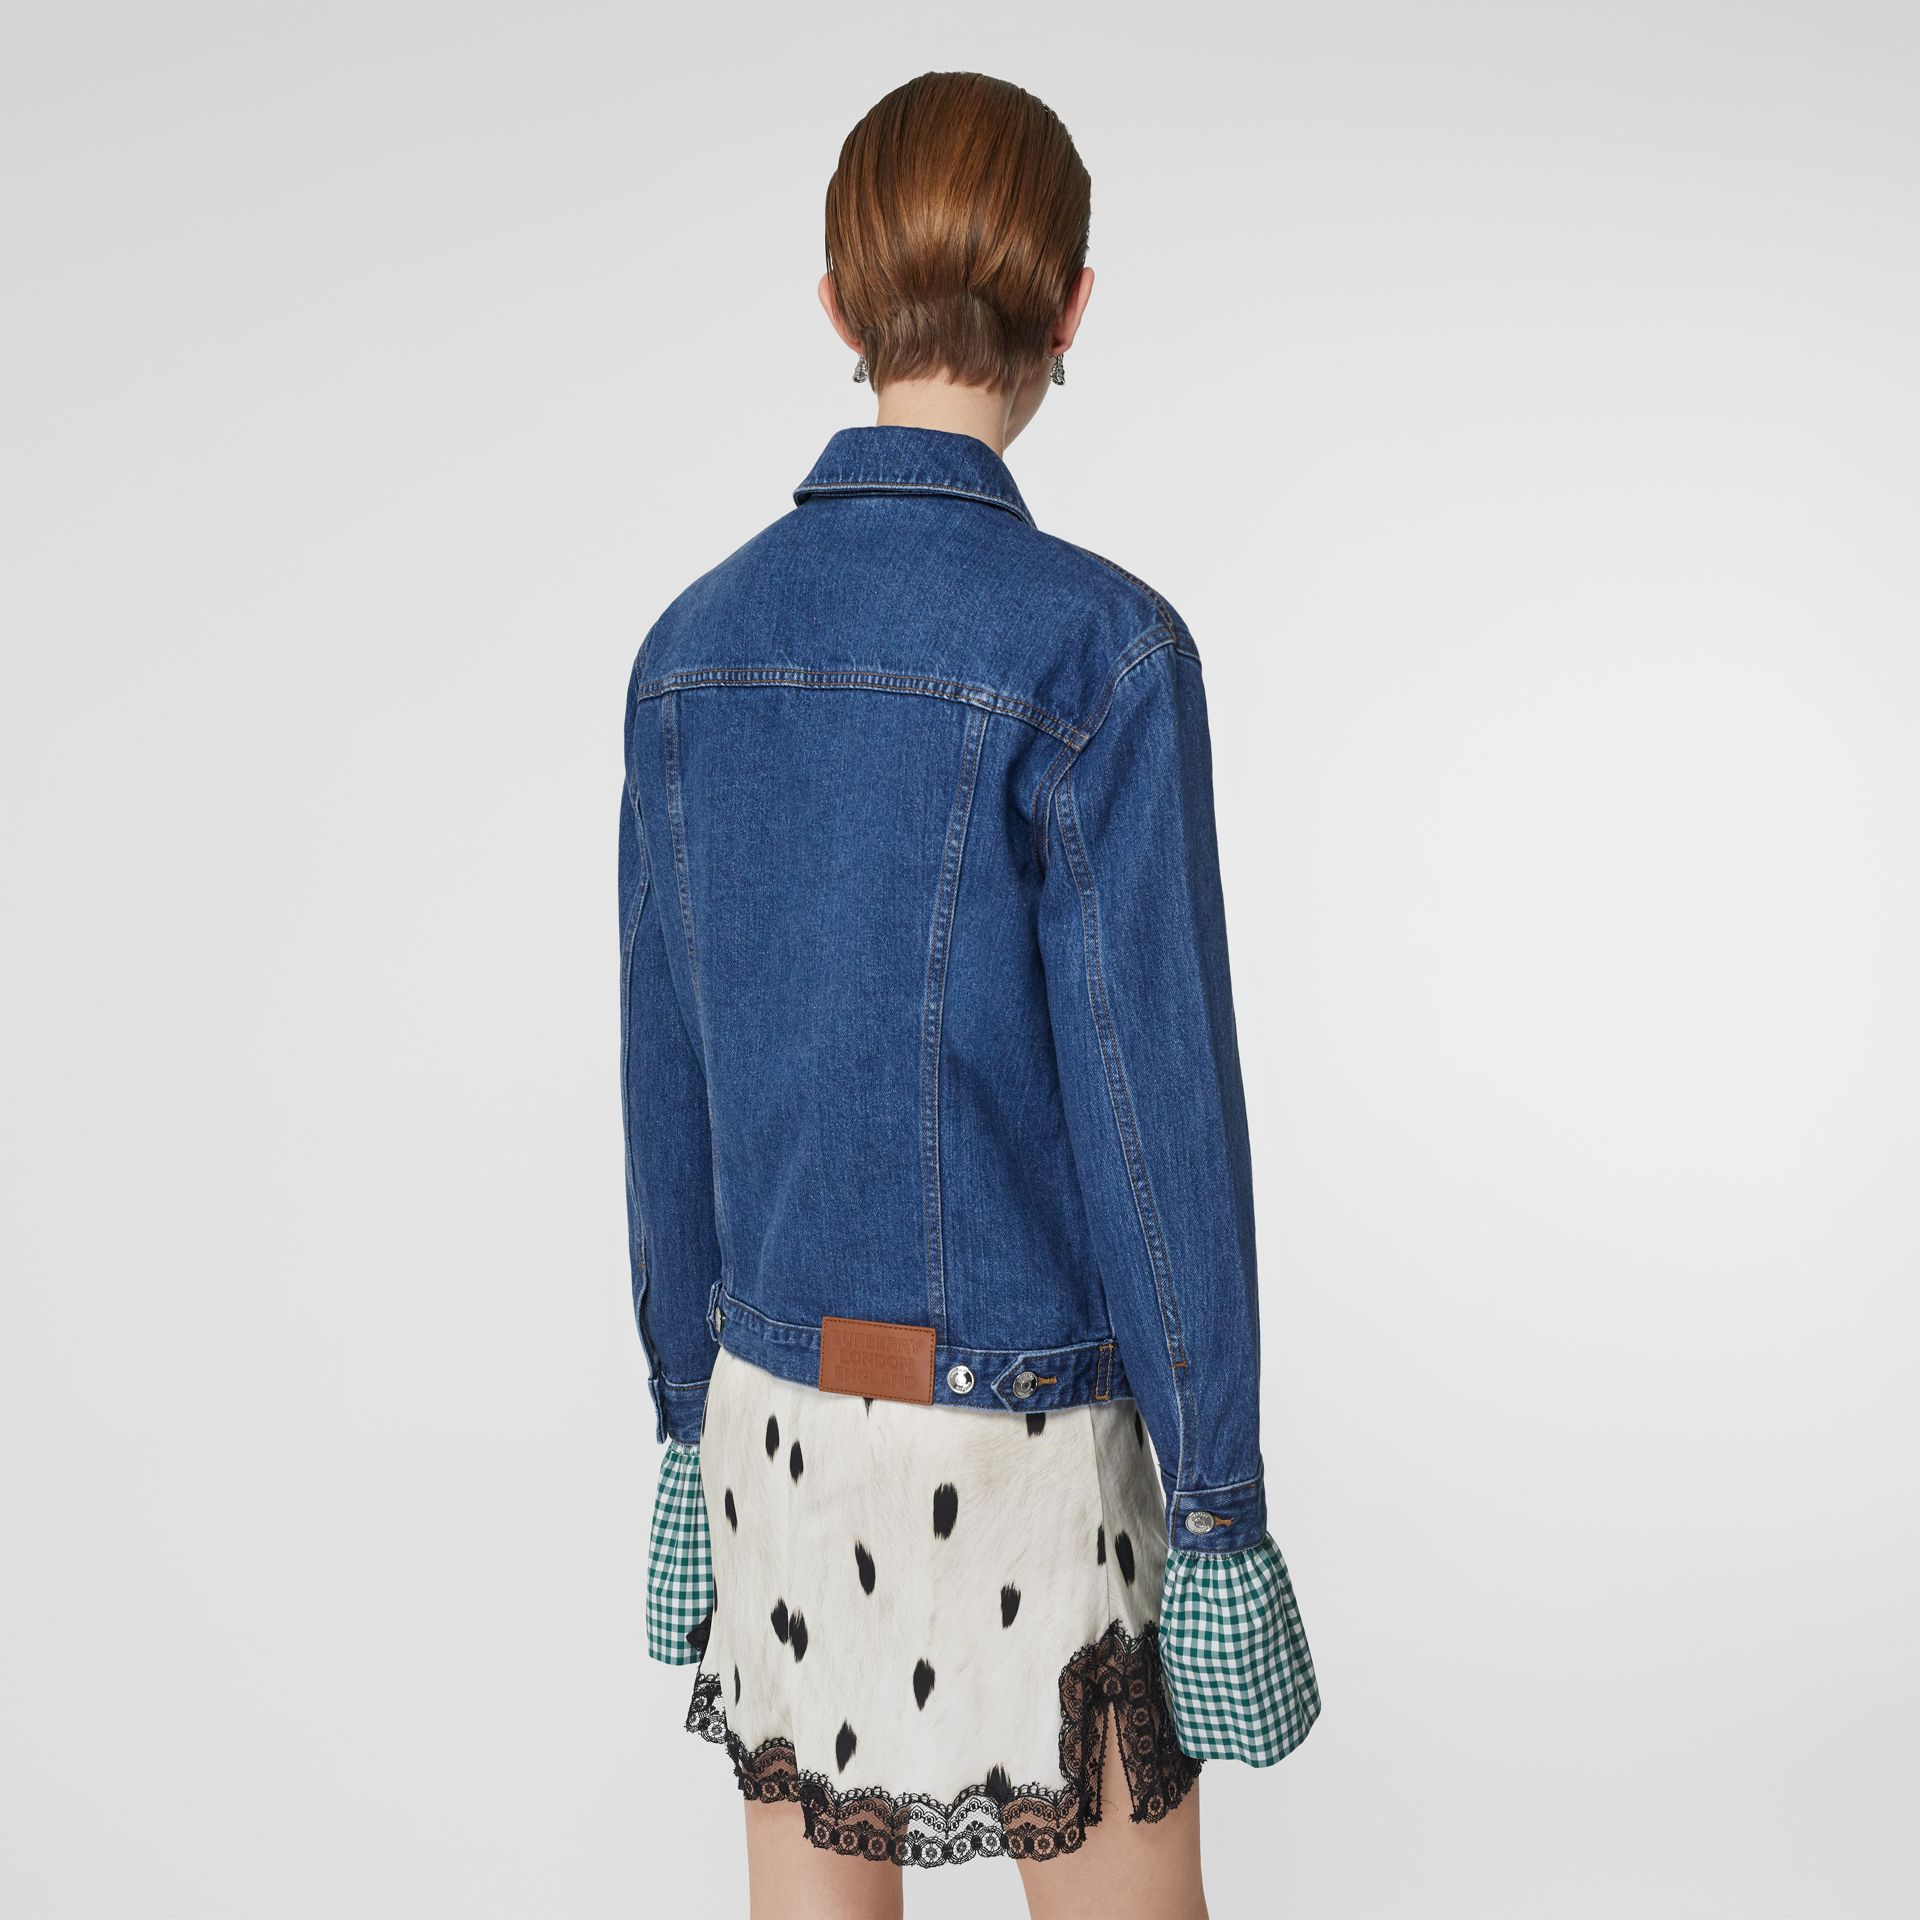 Deer Motif Japanese Denim Jacket in Mid Blue - Women | Burberry - gallery image 2